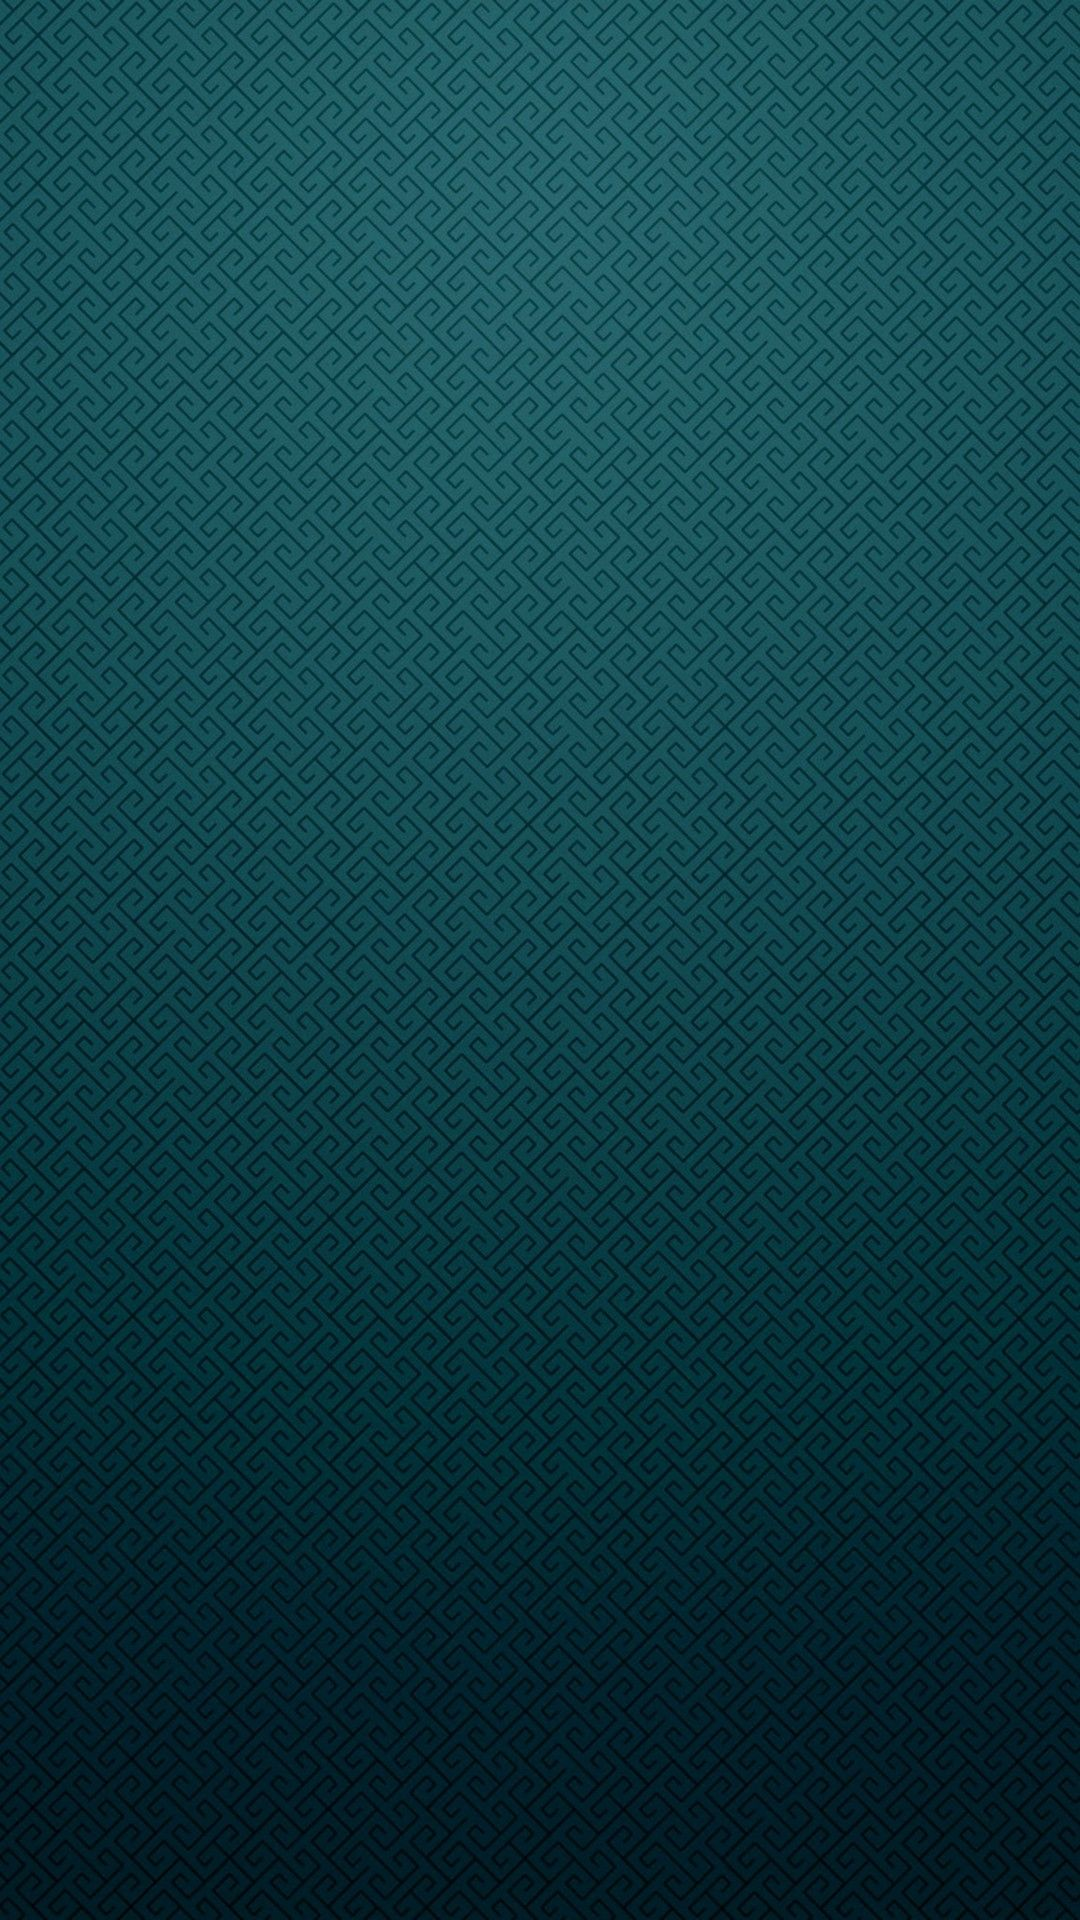 Teal Green Wallpaper For Android Best Android Wallpapers